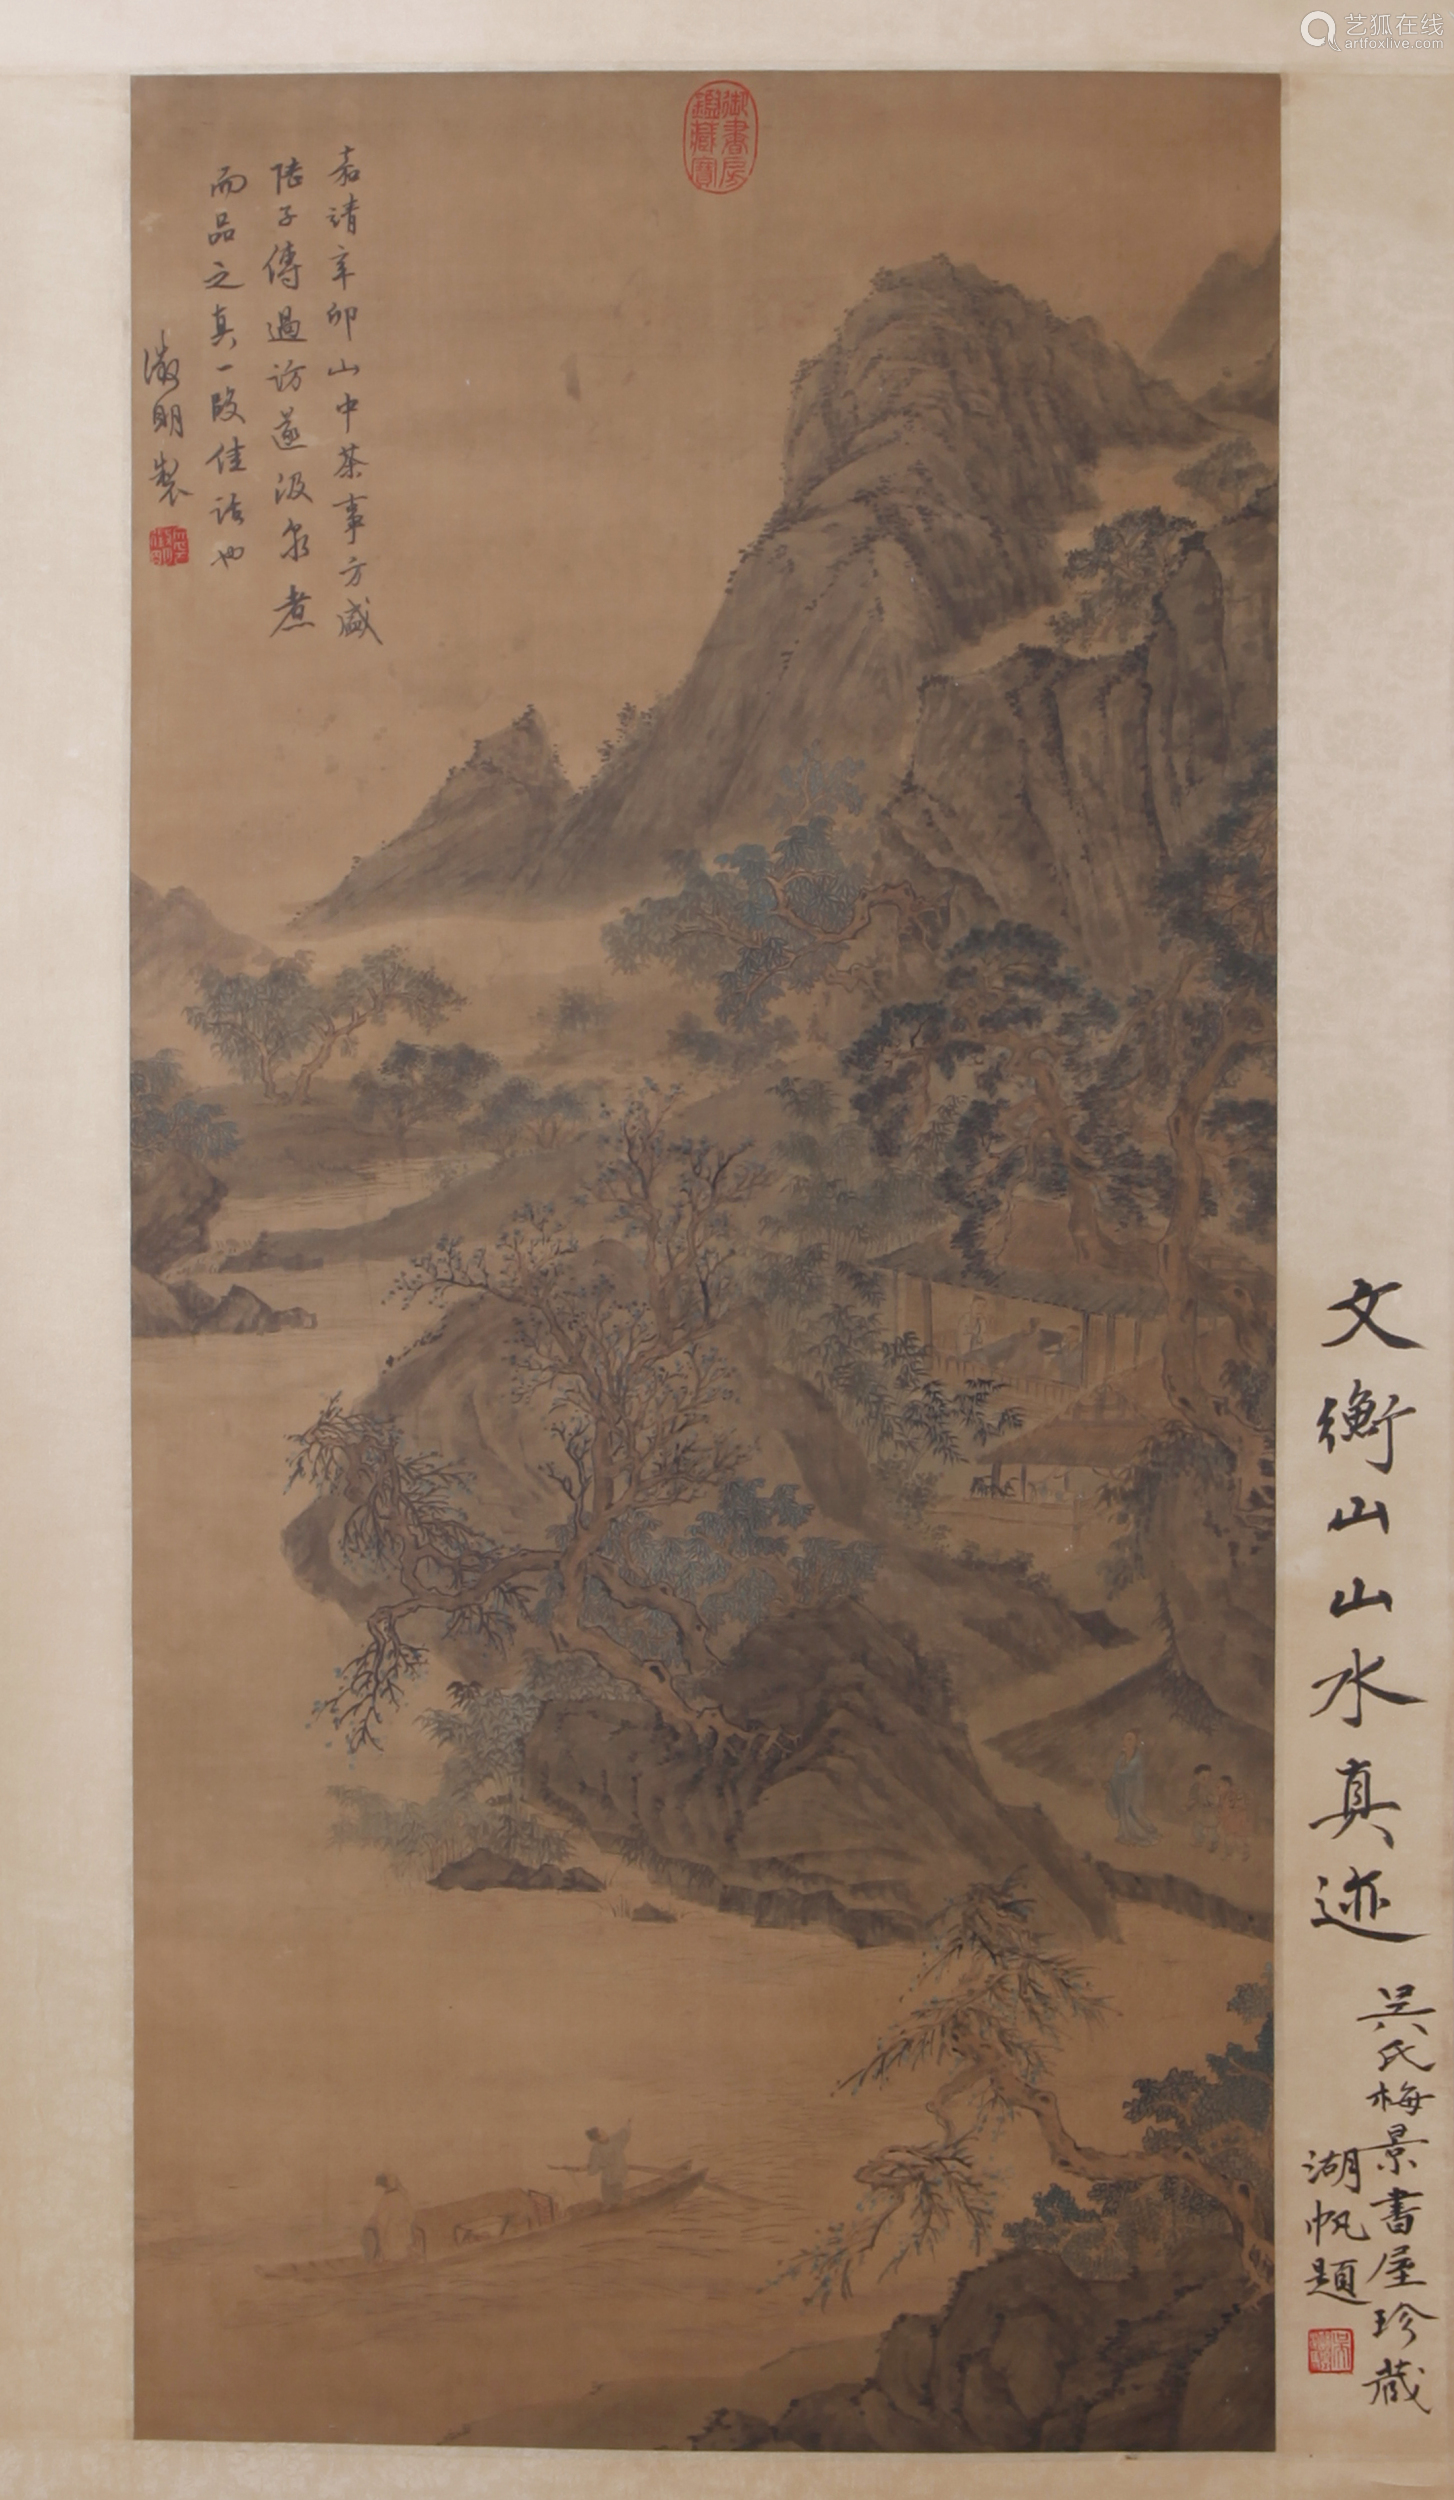 Wen Zhengming - Mountain Scenery Shan Shui Painting